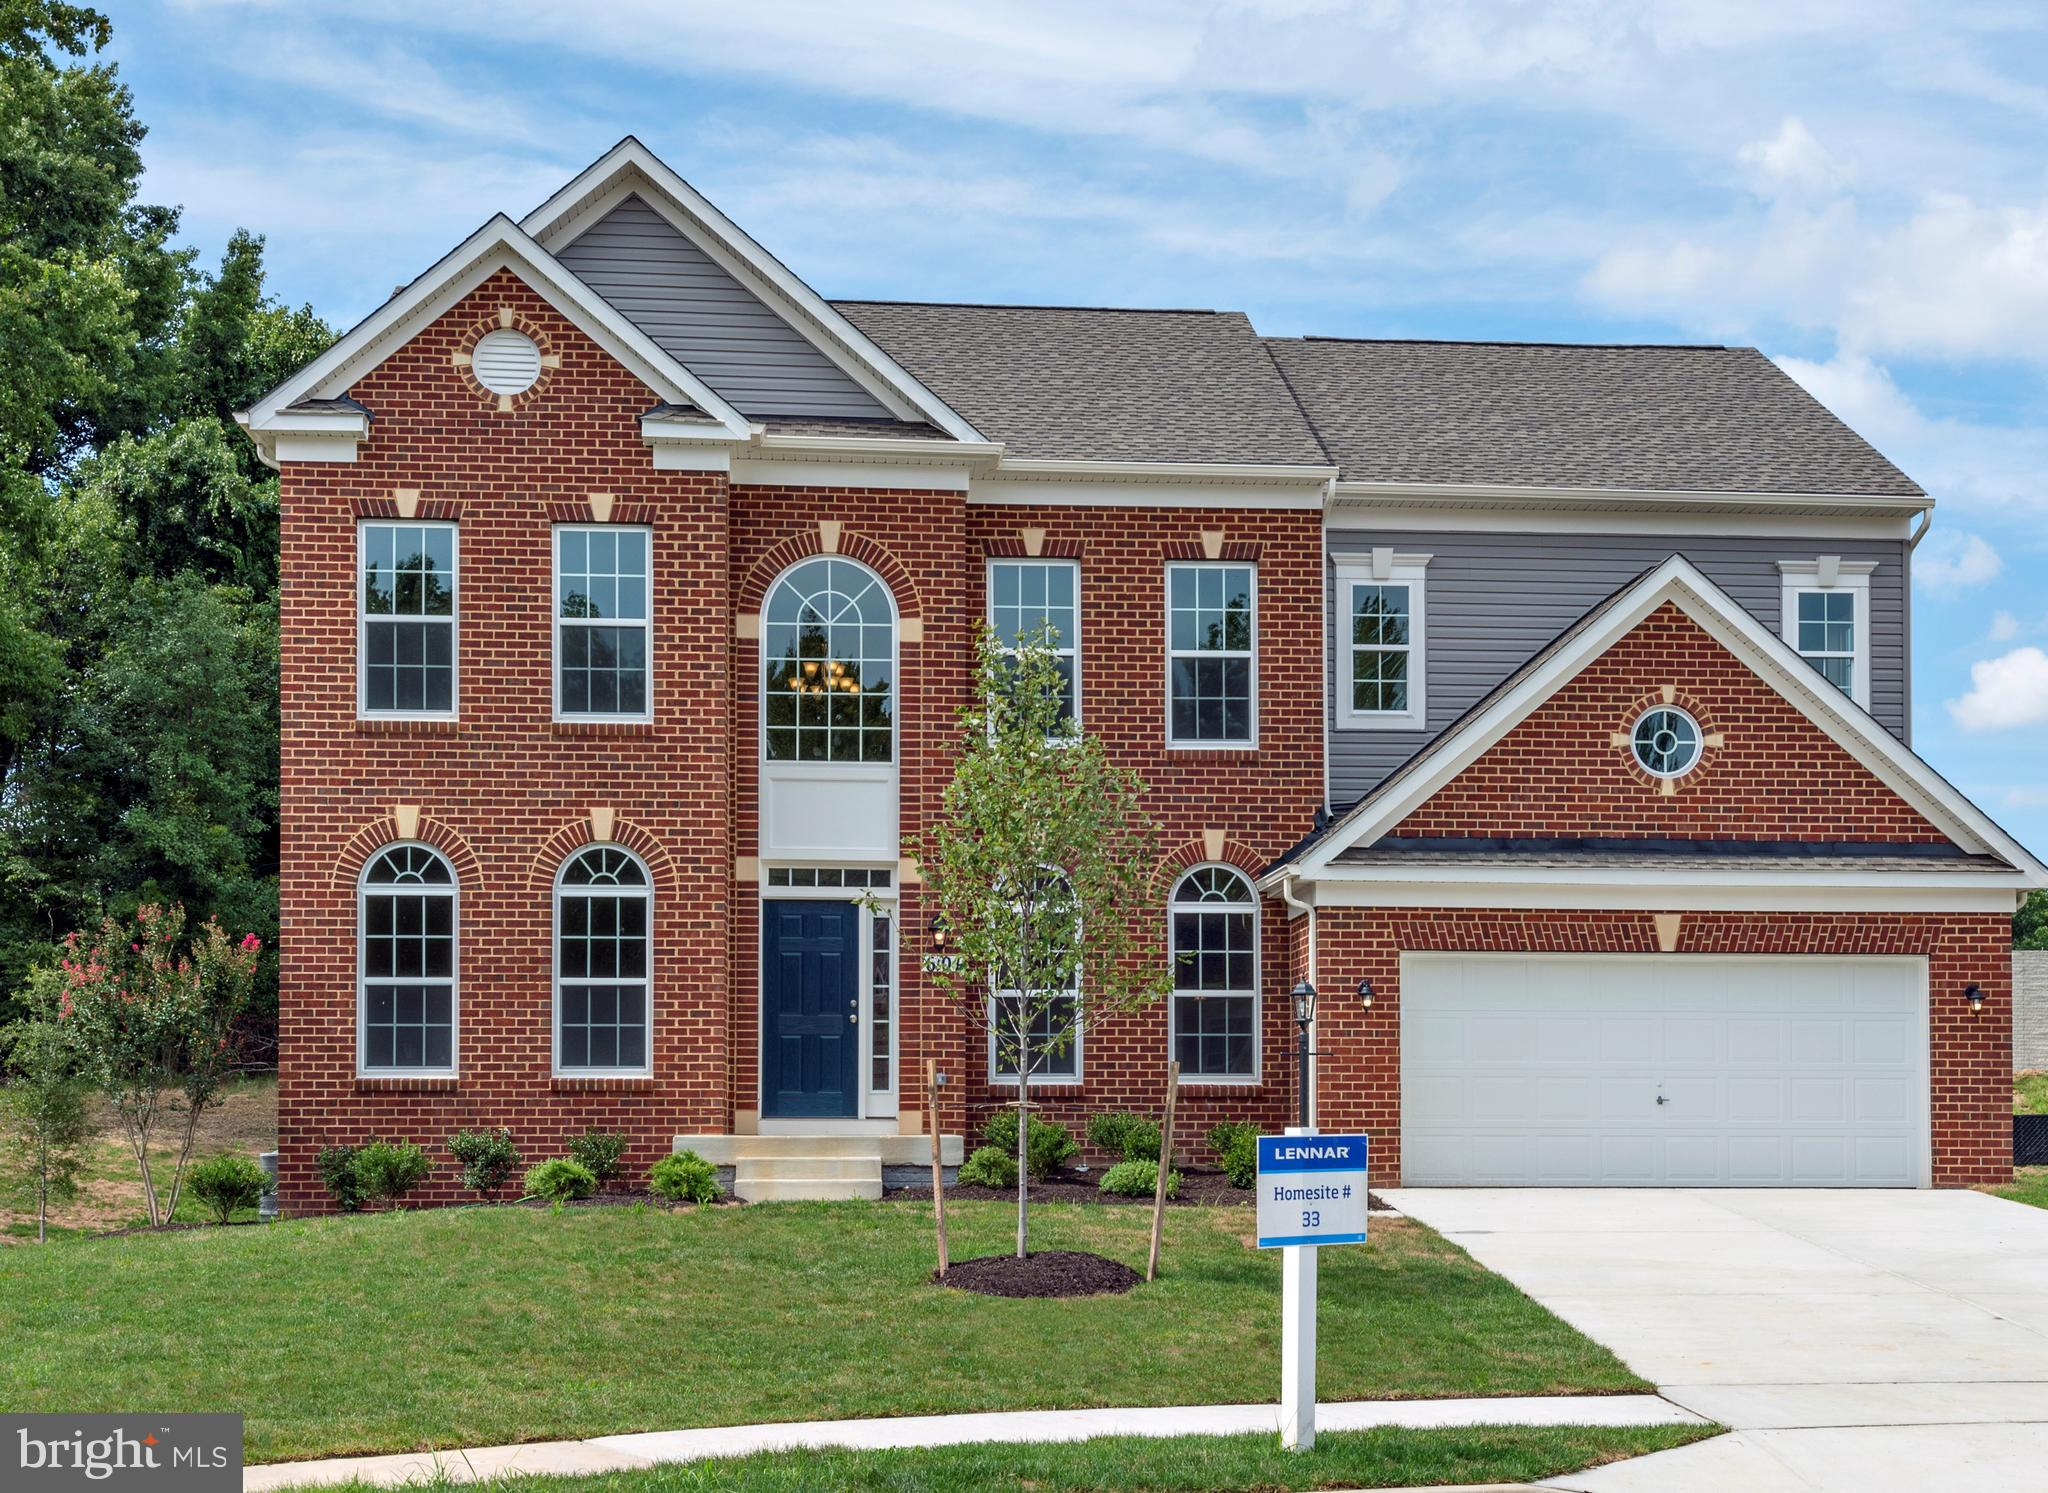 This Dawson home offers five bedrooms, four-and-a-half bathrooms and a two-car garage. With a stunni